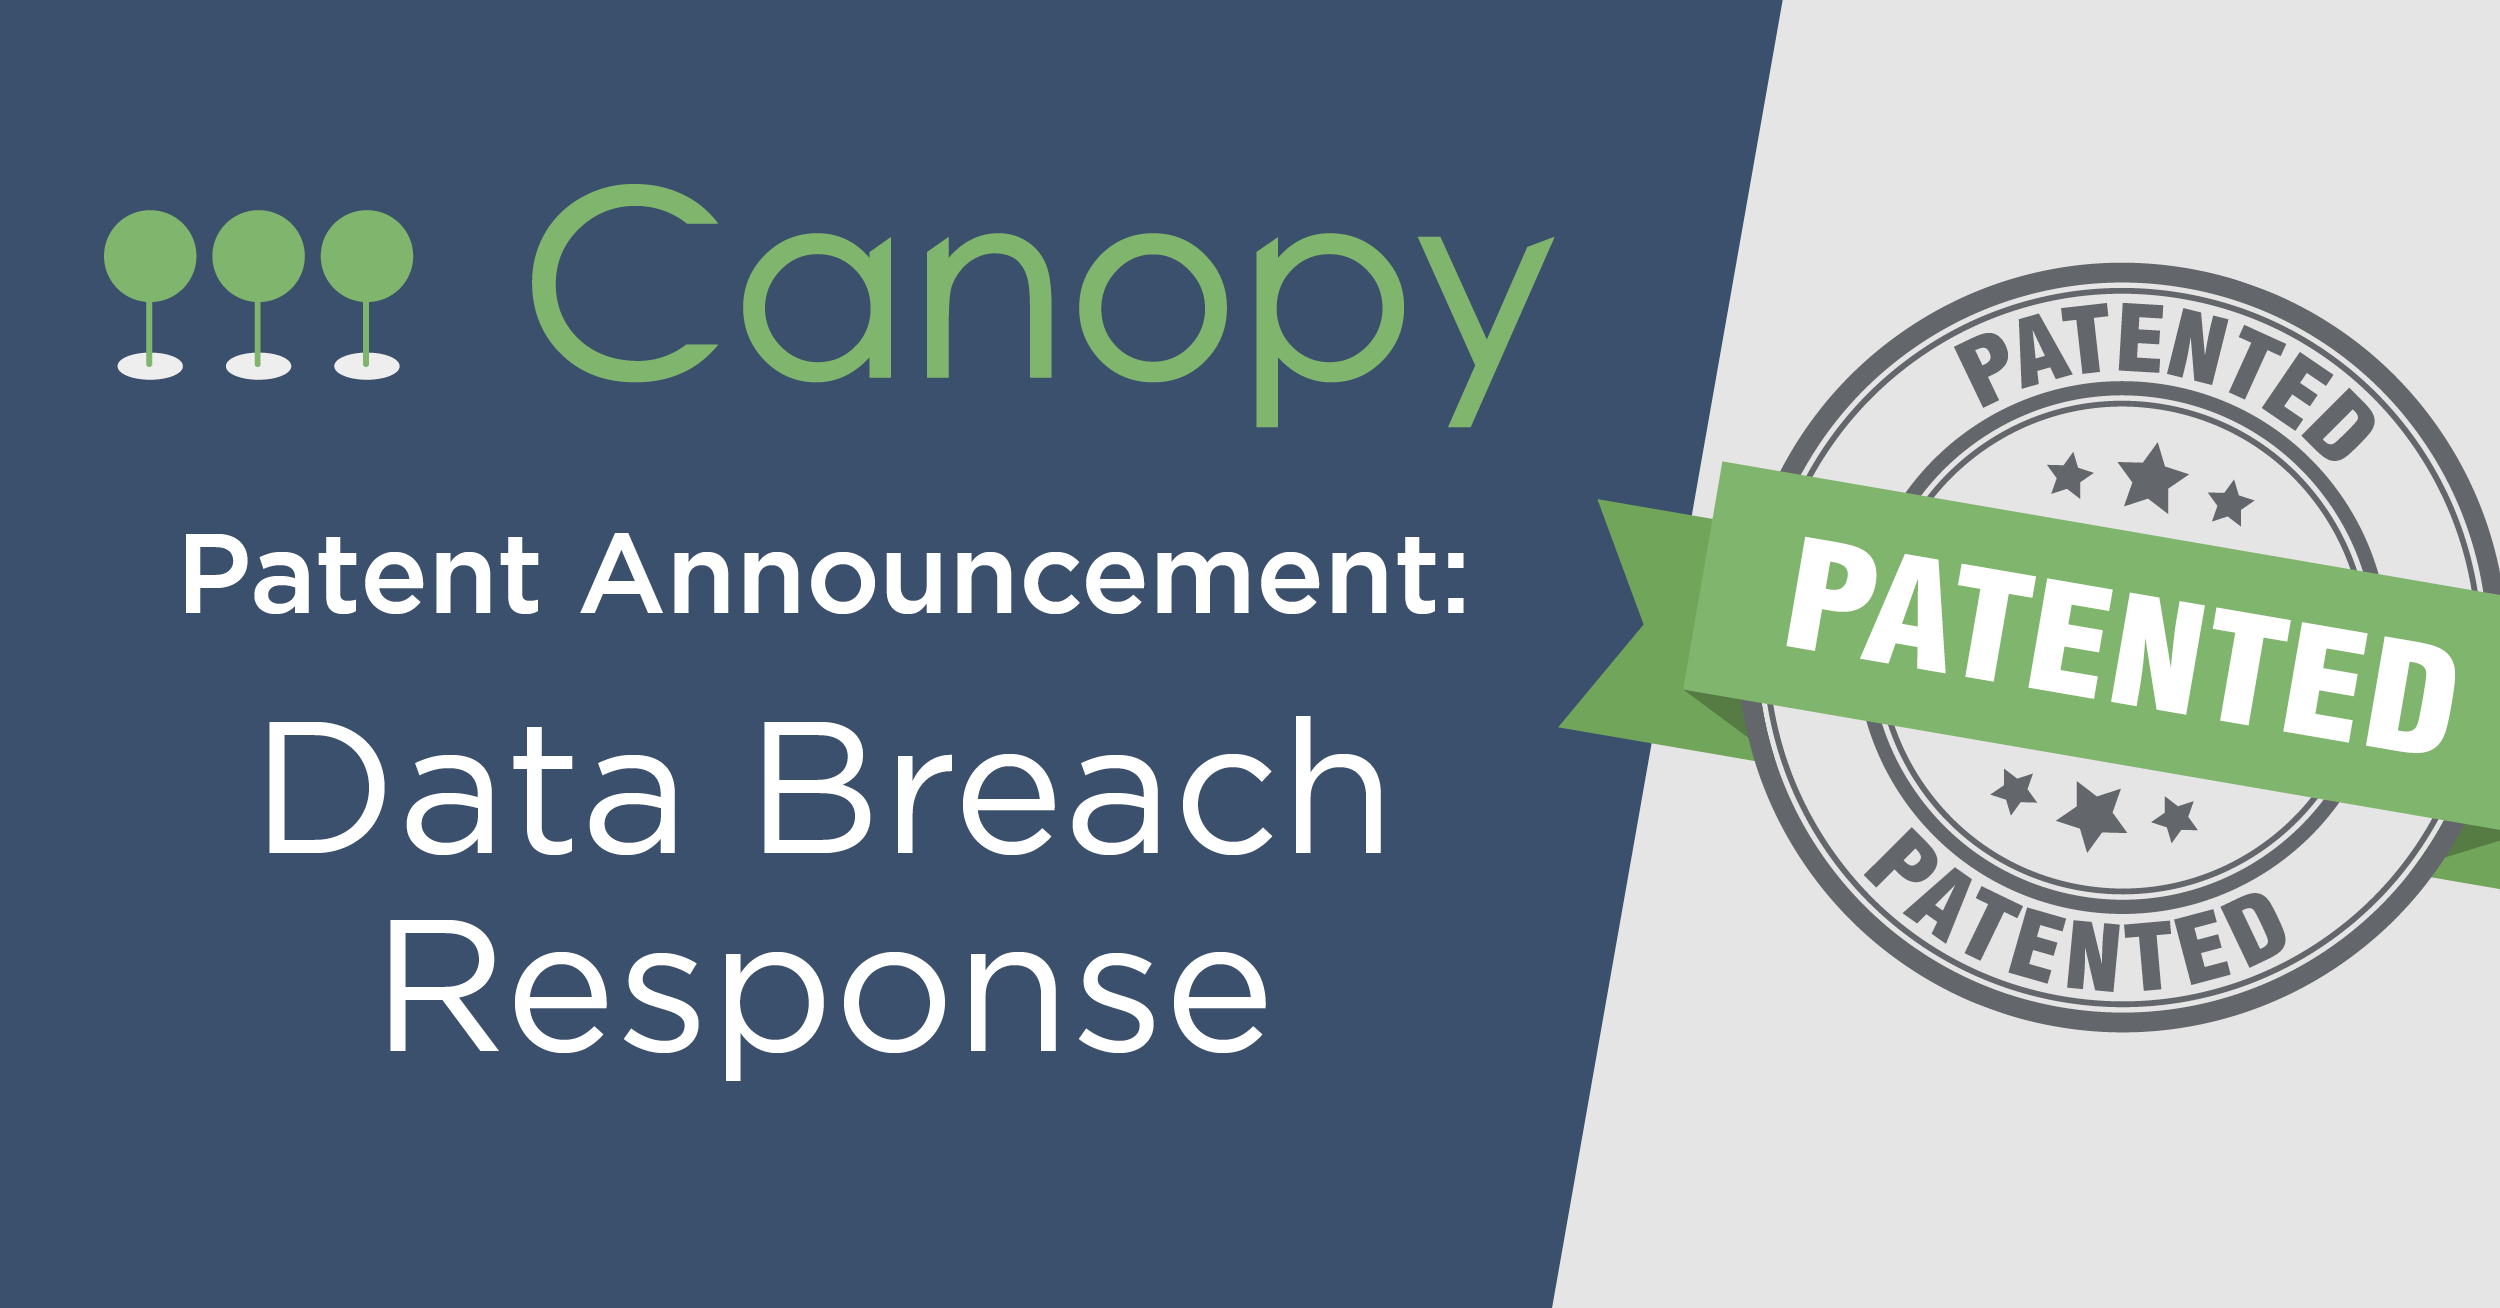 Canopy Software, Inc. Patent Announcement for Data Breach Response